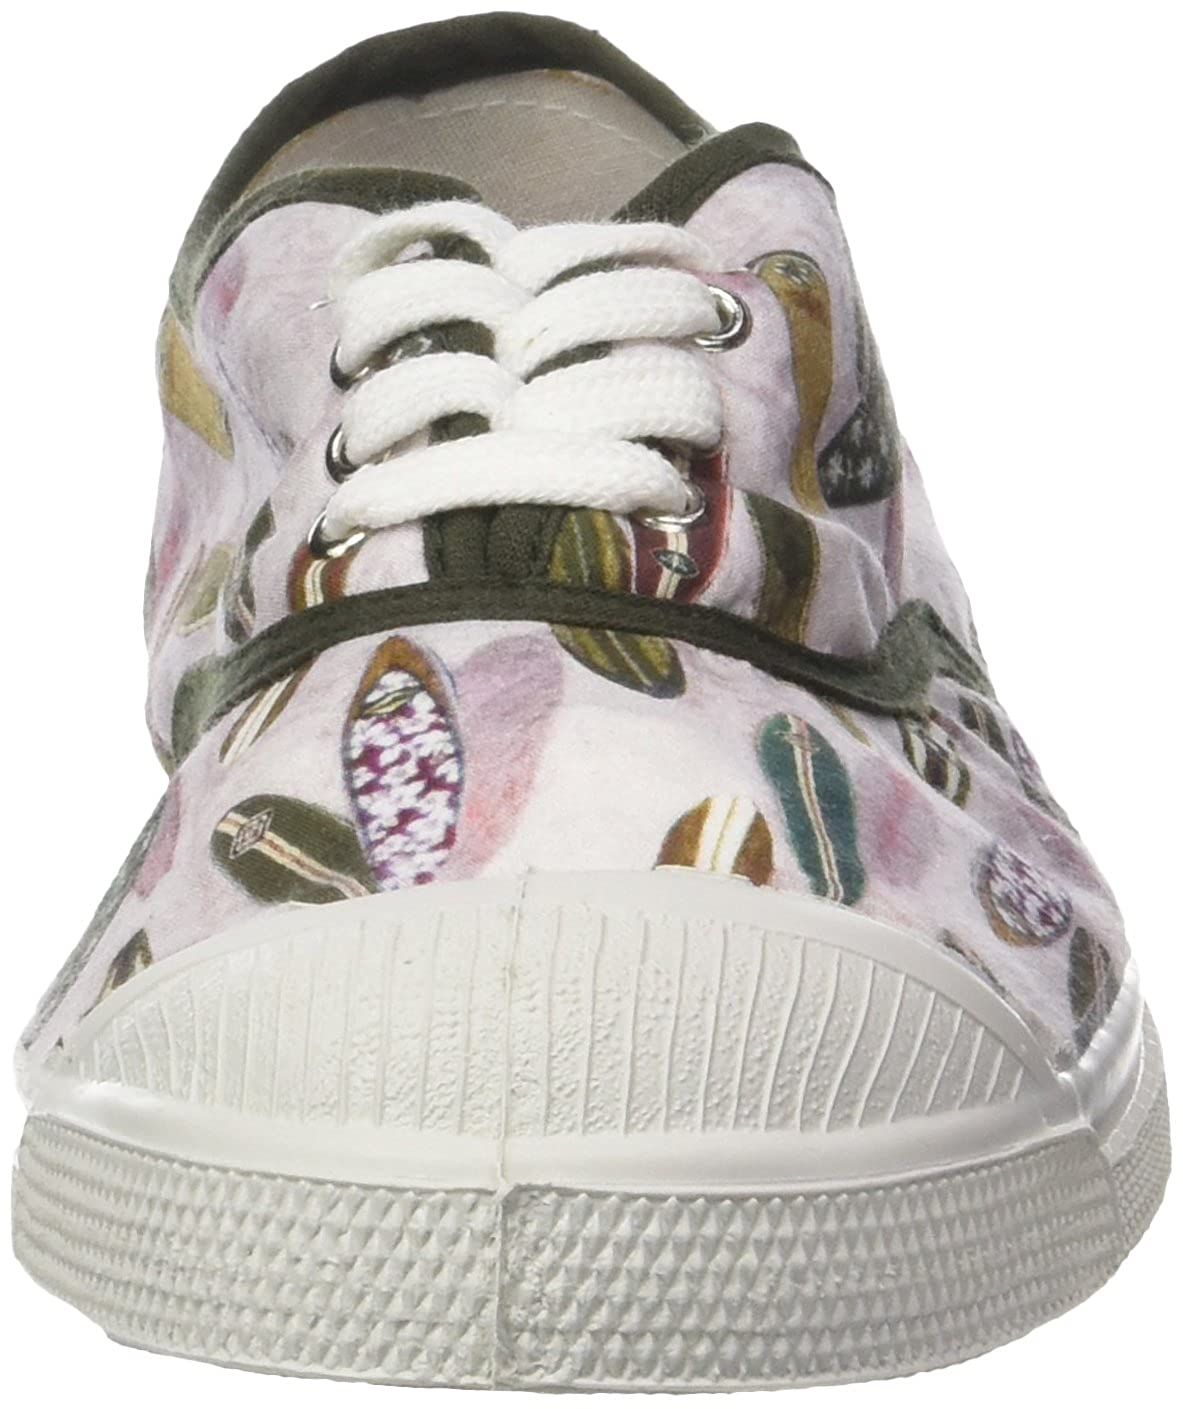 3e5f8f805b64c2 Bensimon Tennis Lacets Surf Prints, Baskets Femme